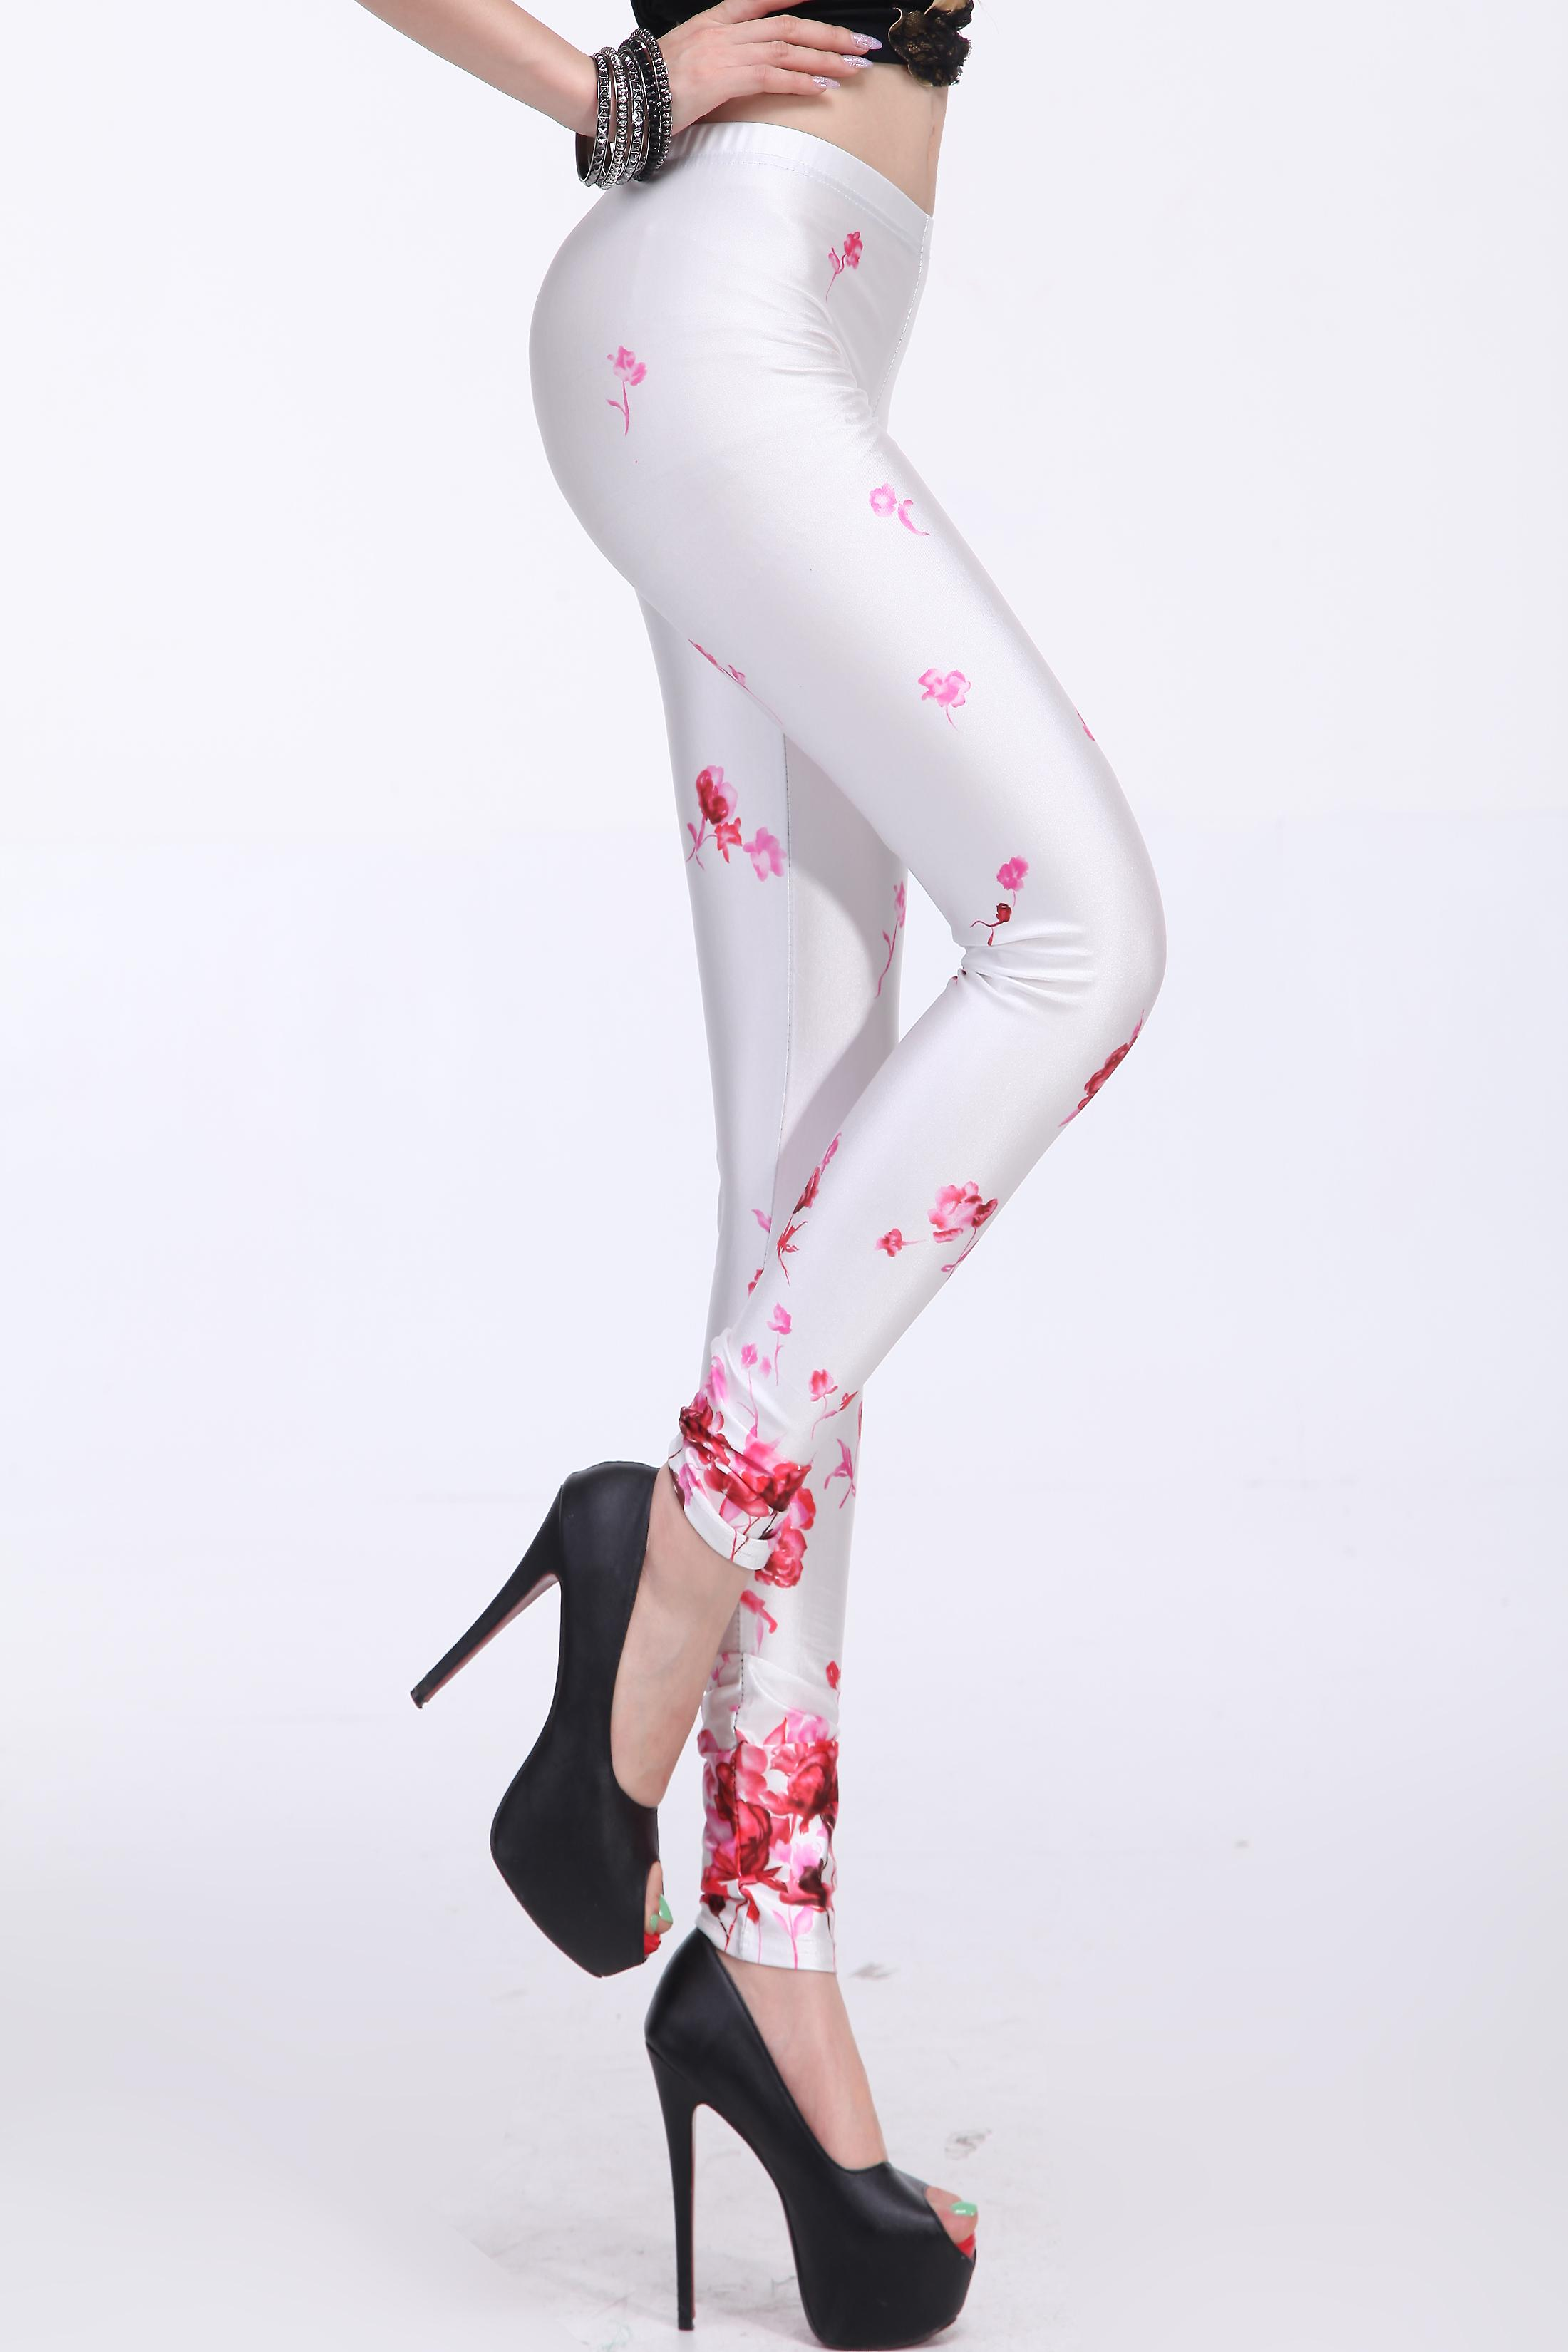 Waooh - Fashion - Leggings Flower Pattern